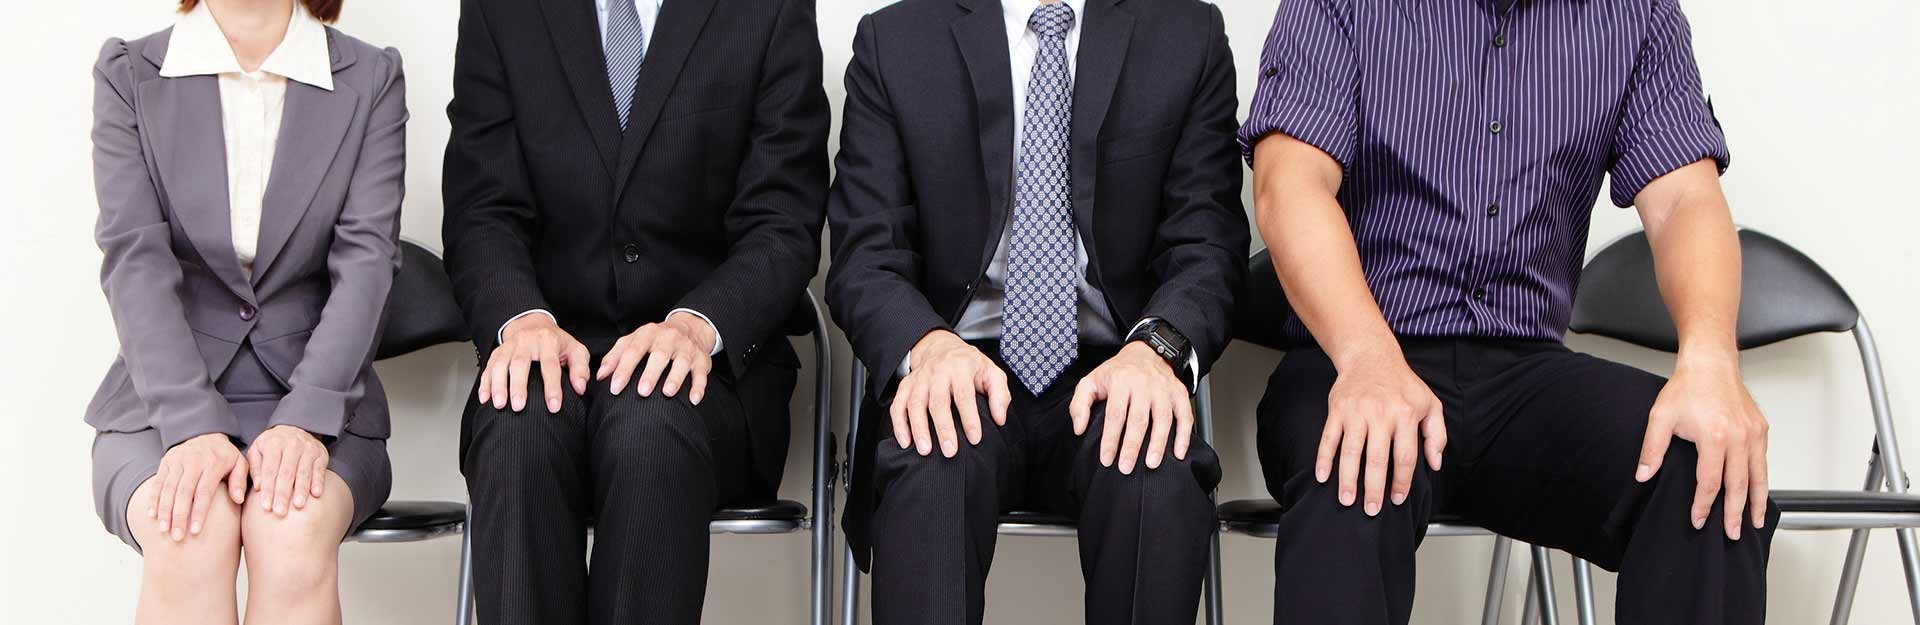 glm business support office recruitment specialists finding your perfect job can be daunting